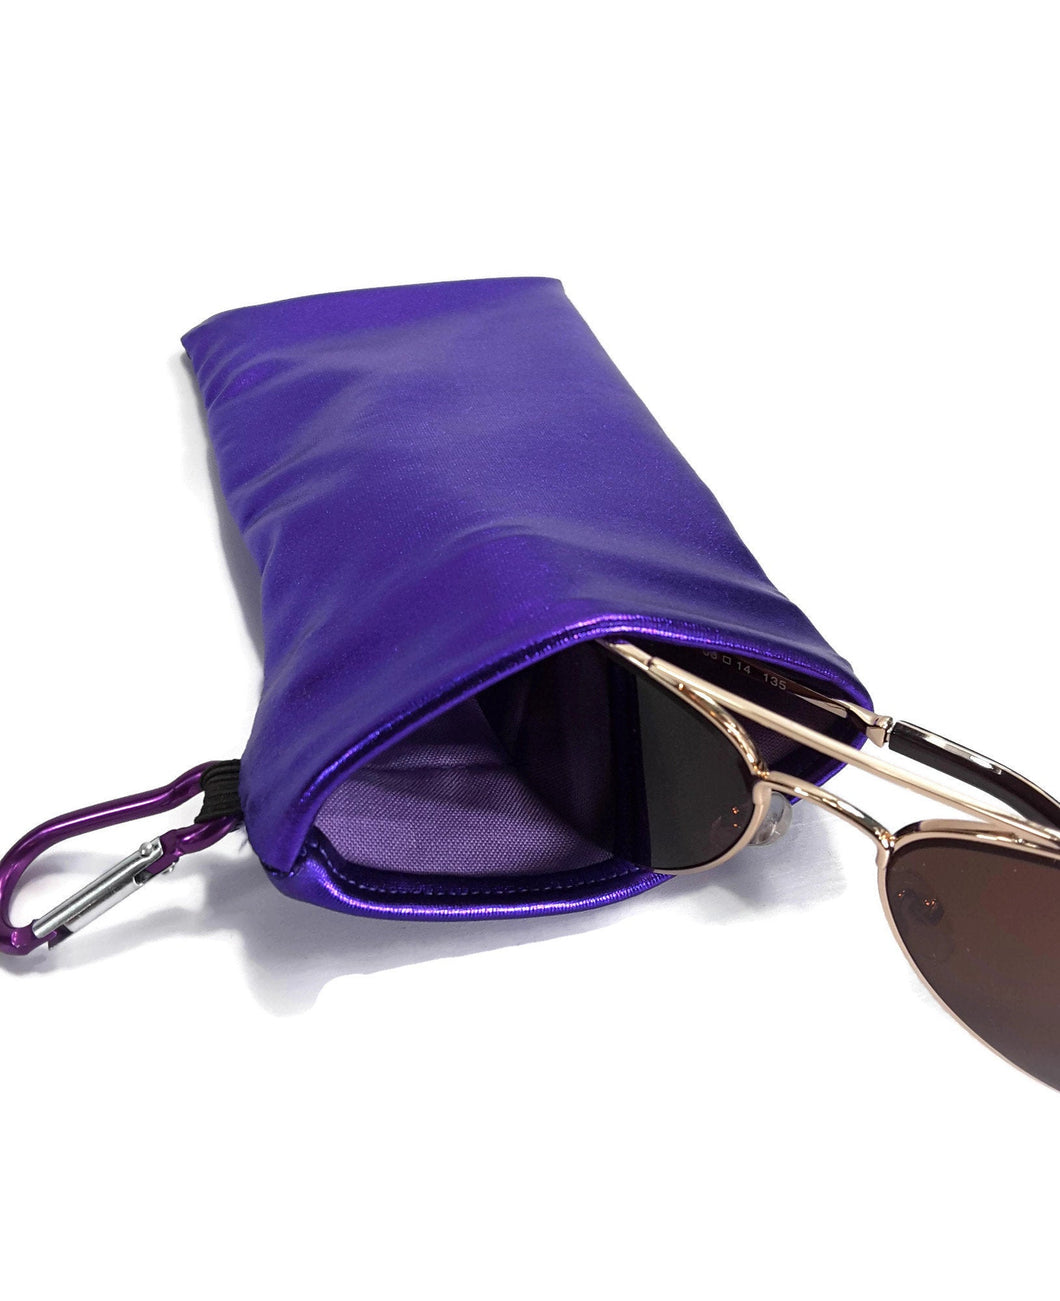 Sunglasses Snap Closure Case With Carabiner Clip Purple Hologram Wet Look - Fliptastic Leos